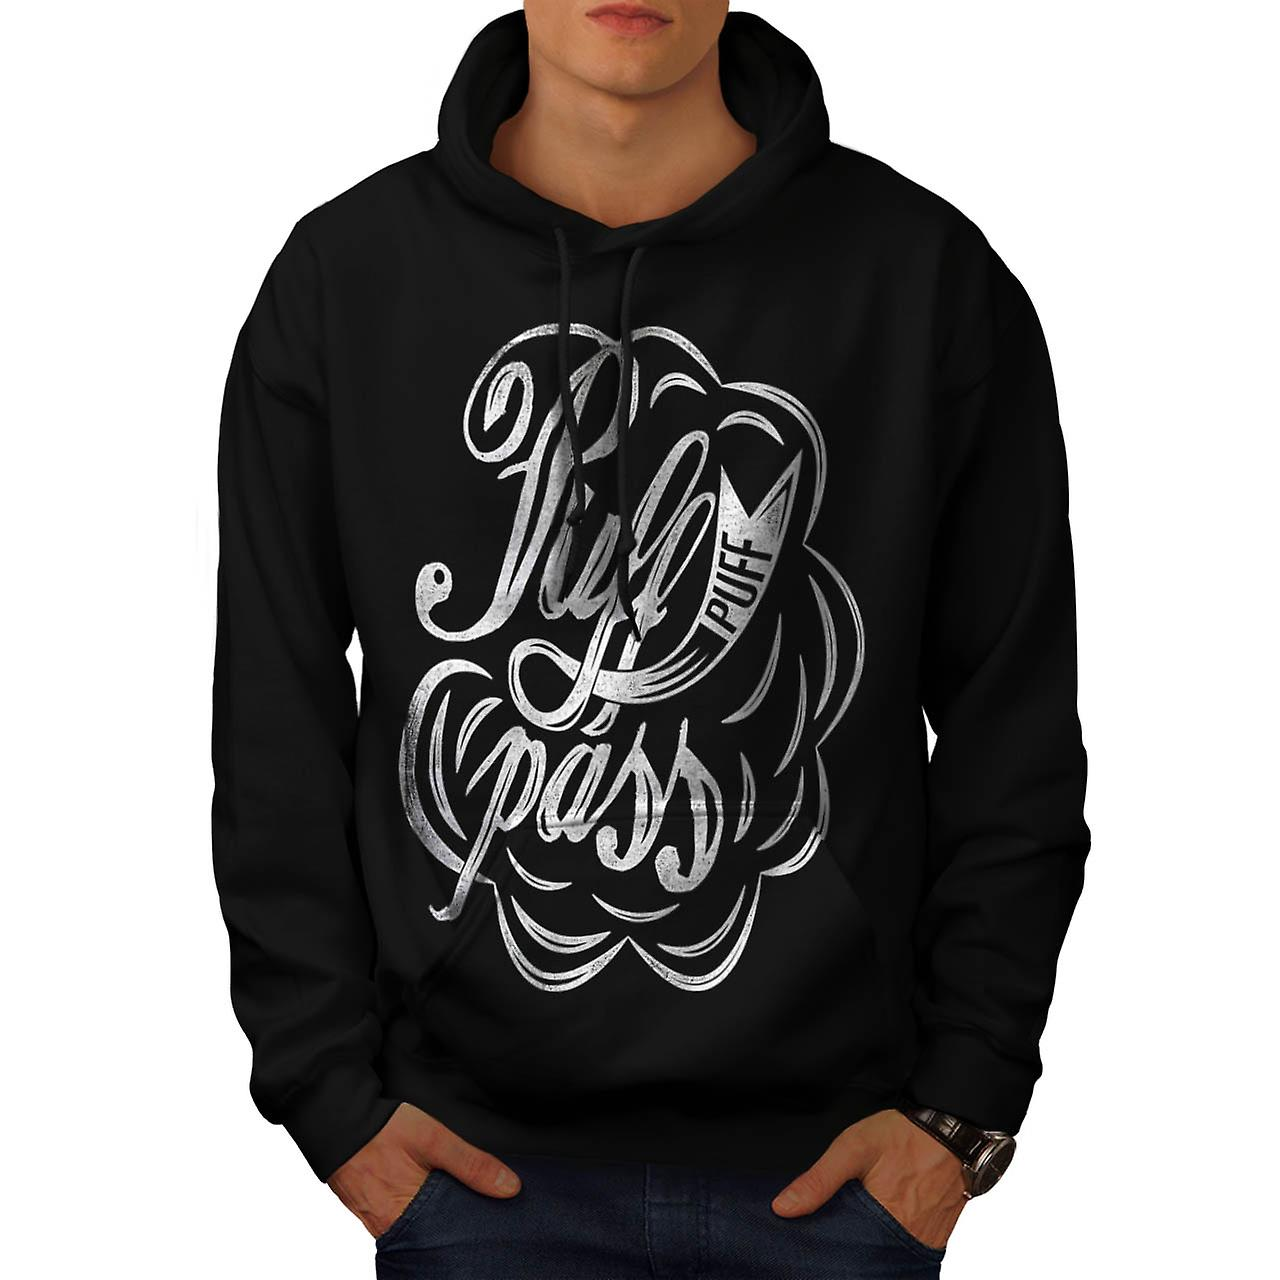 Puff and Pass Bong Spliff Weed Men Black Hoodie | Wellcoda